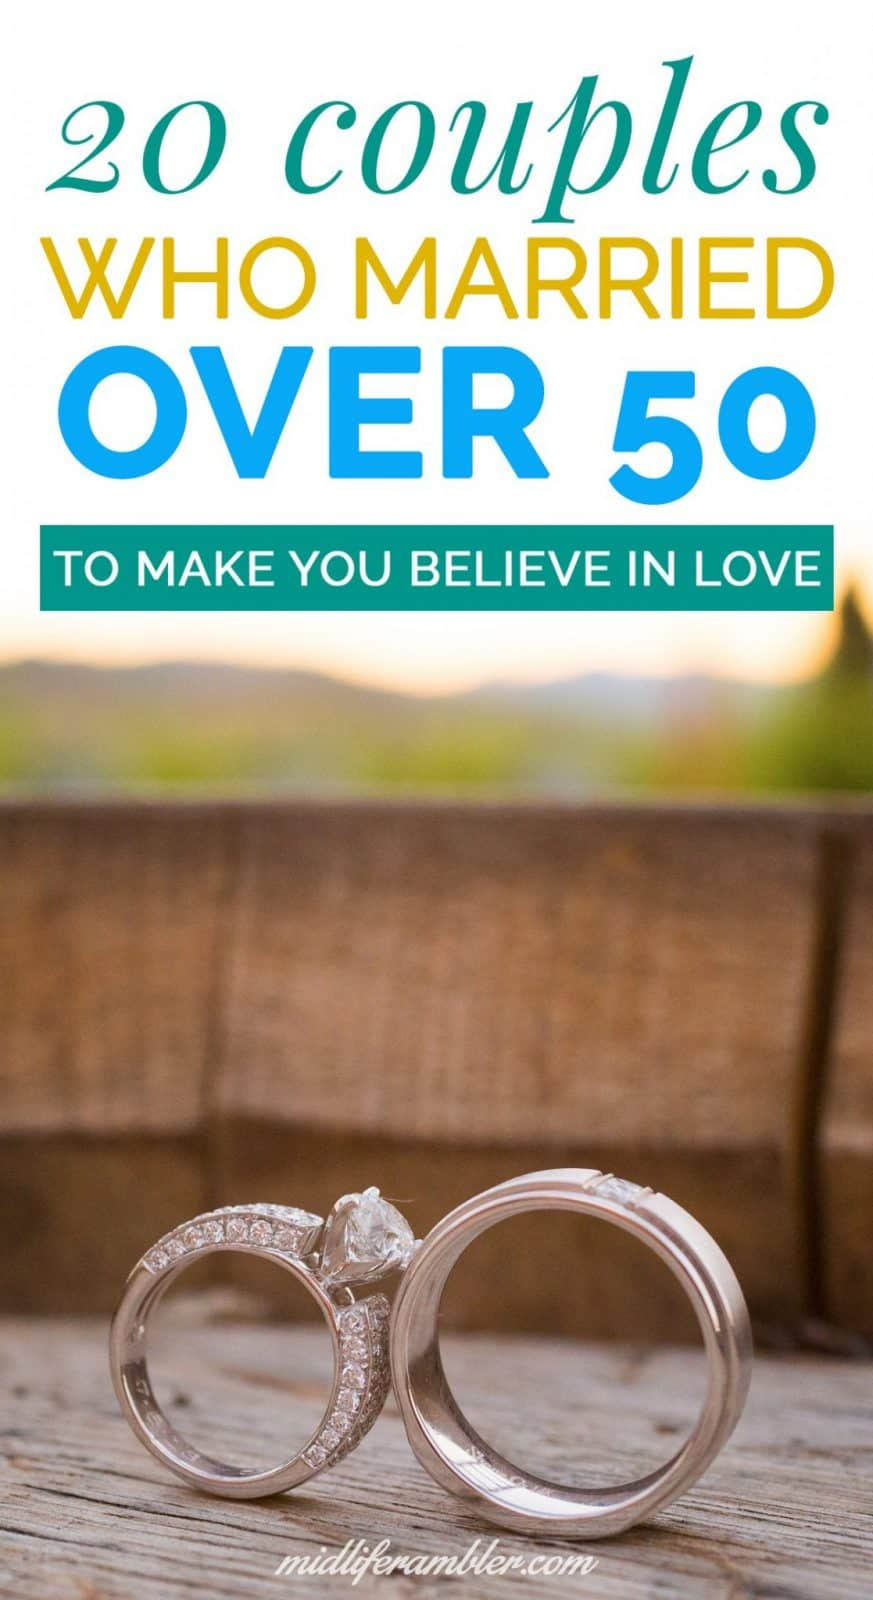 20 Couples Who Met and Married After 50 Who Will Make You Believe in Love Again 2